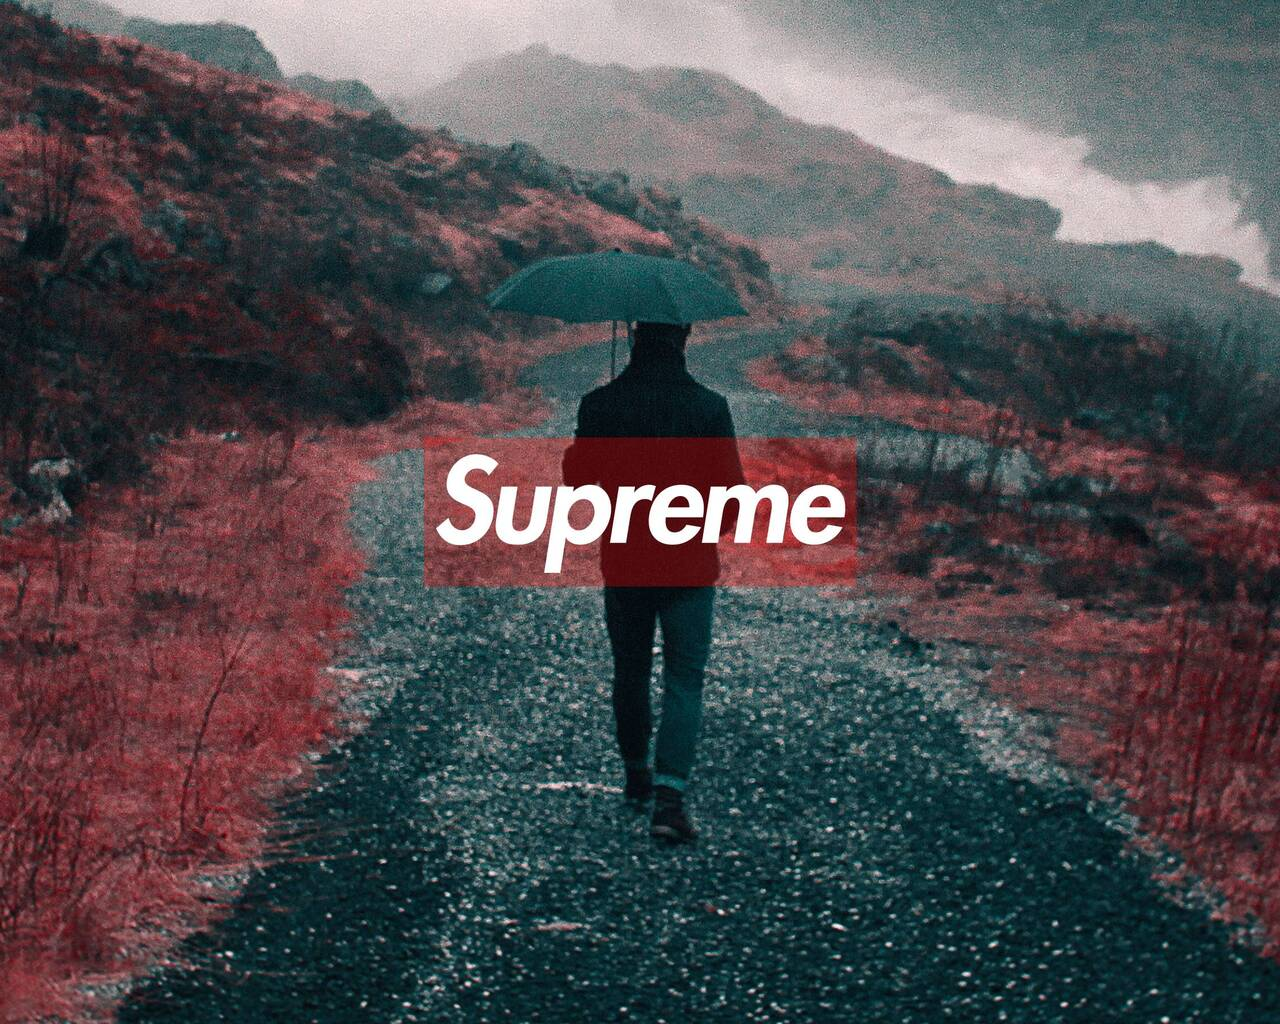 1280x1024 Supreme Resolution HD 4k Wallpapers Images Backgrounds Photos And Pictures